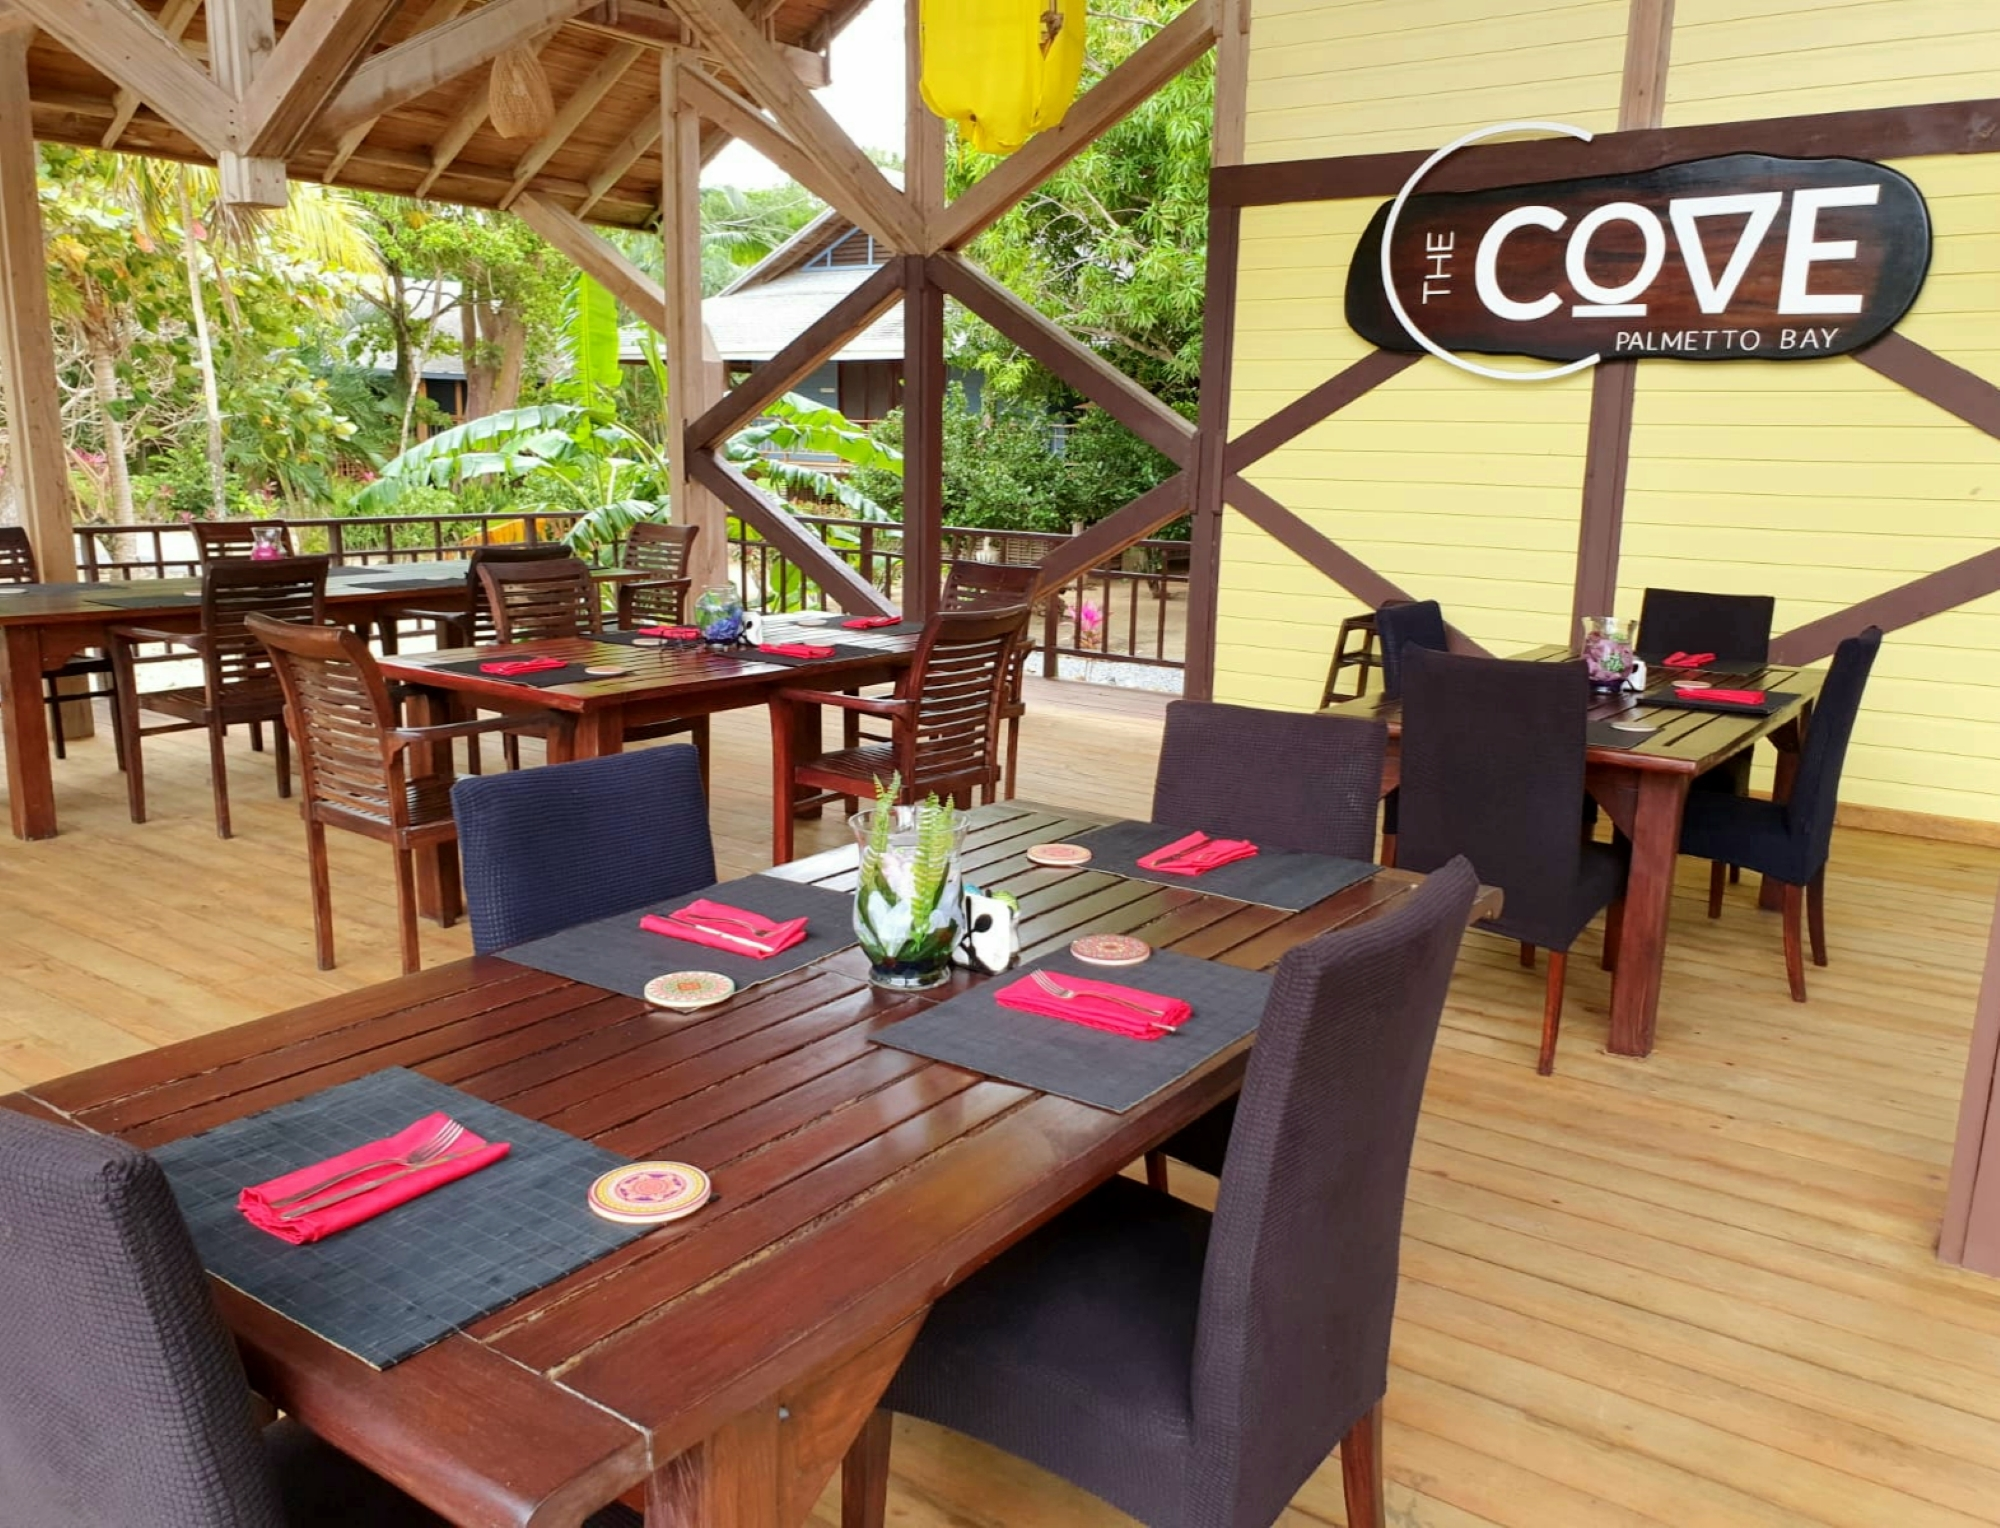 The Cove signature restaurant